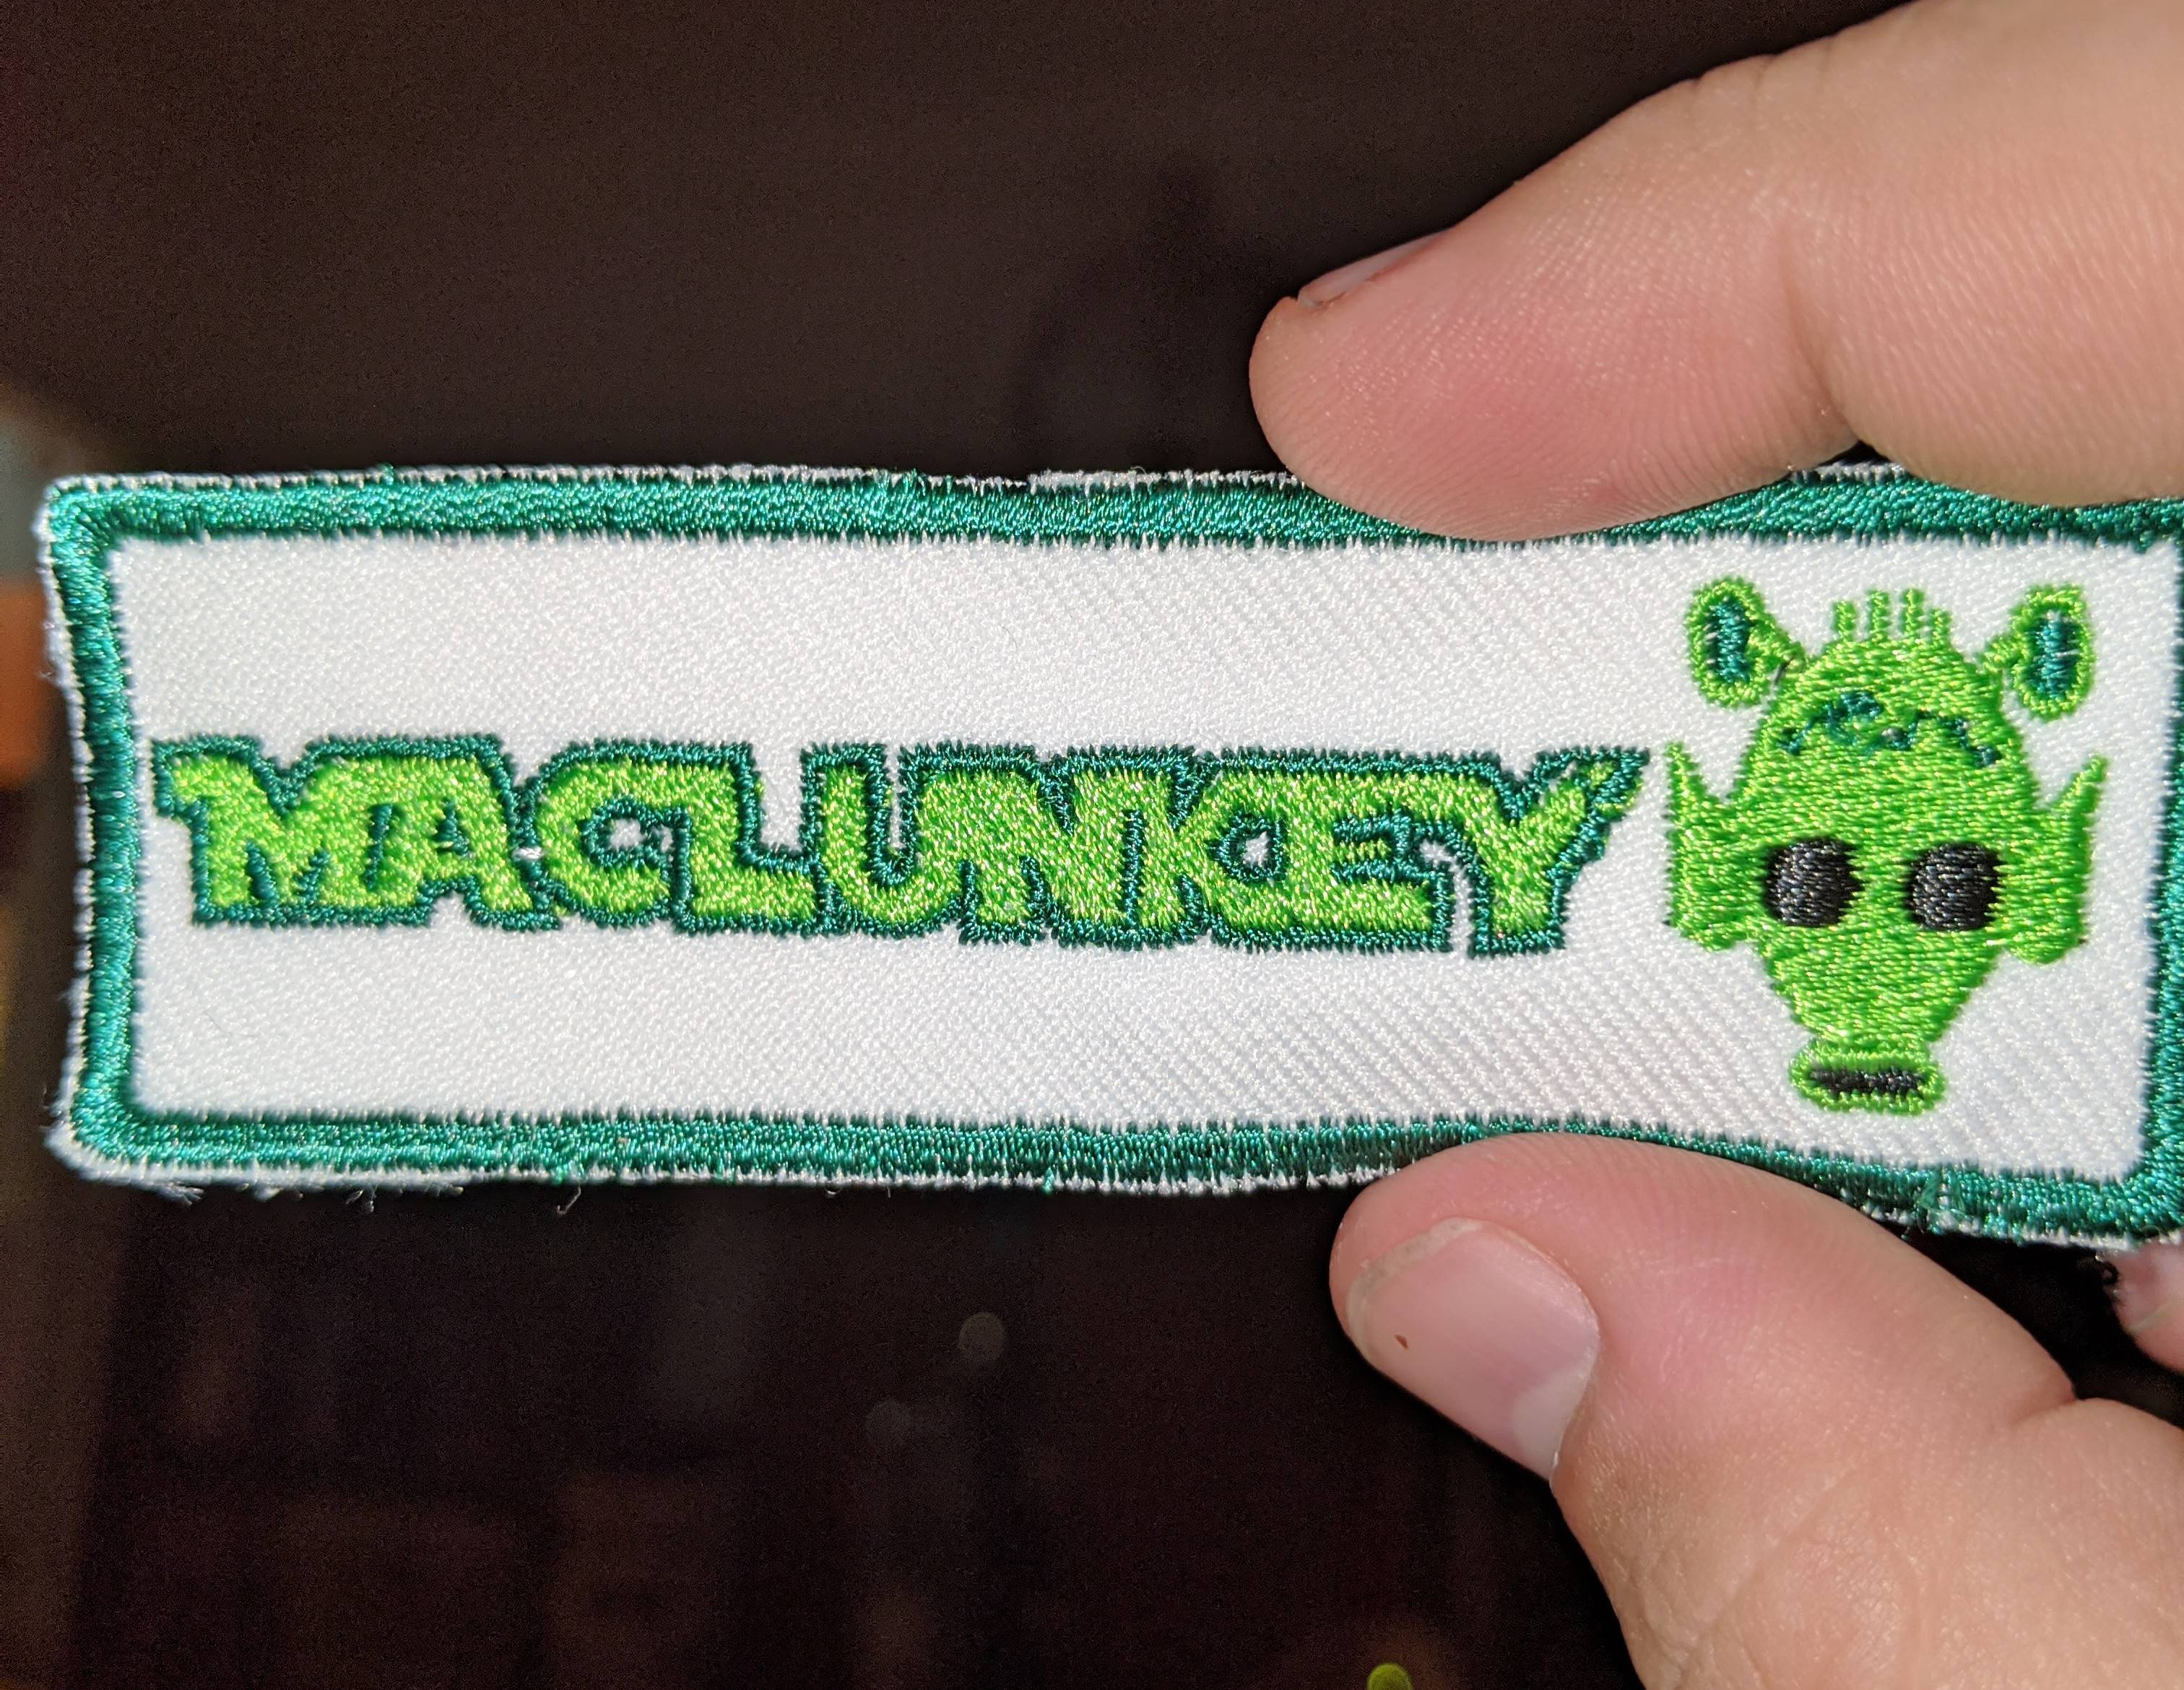 My wife just handed me this. So I immediately shot her with my blaster. #Maclunkey